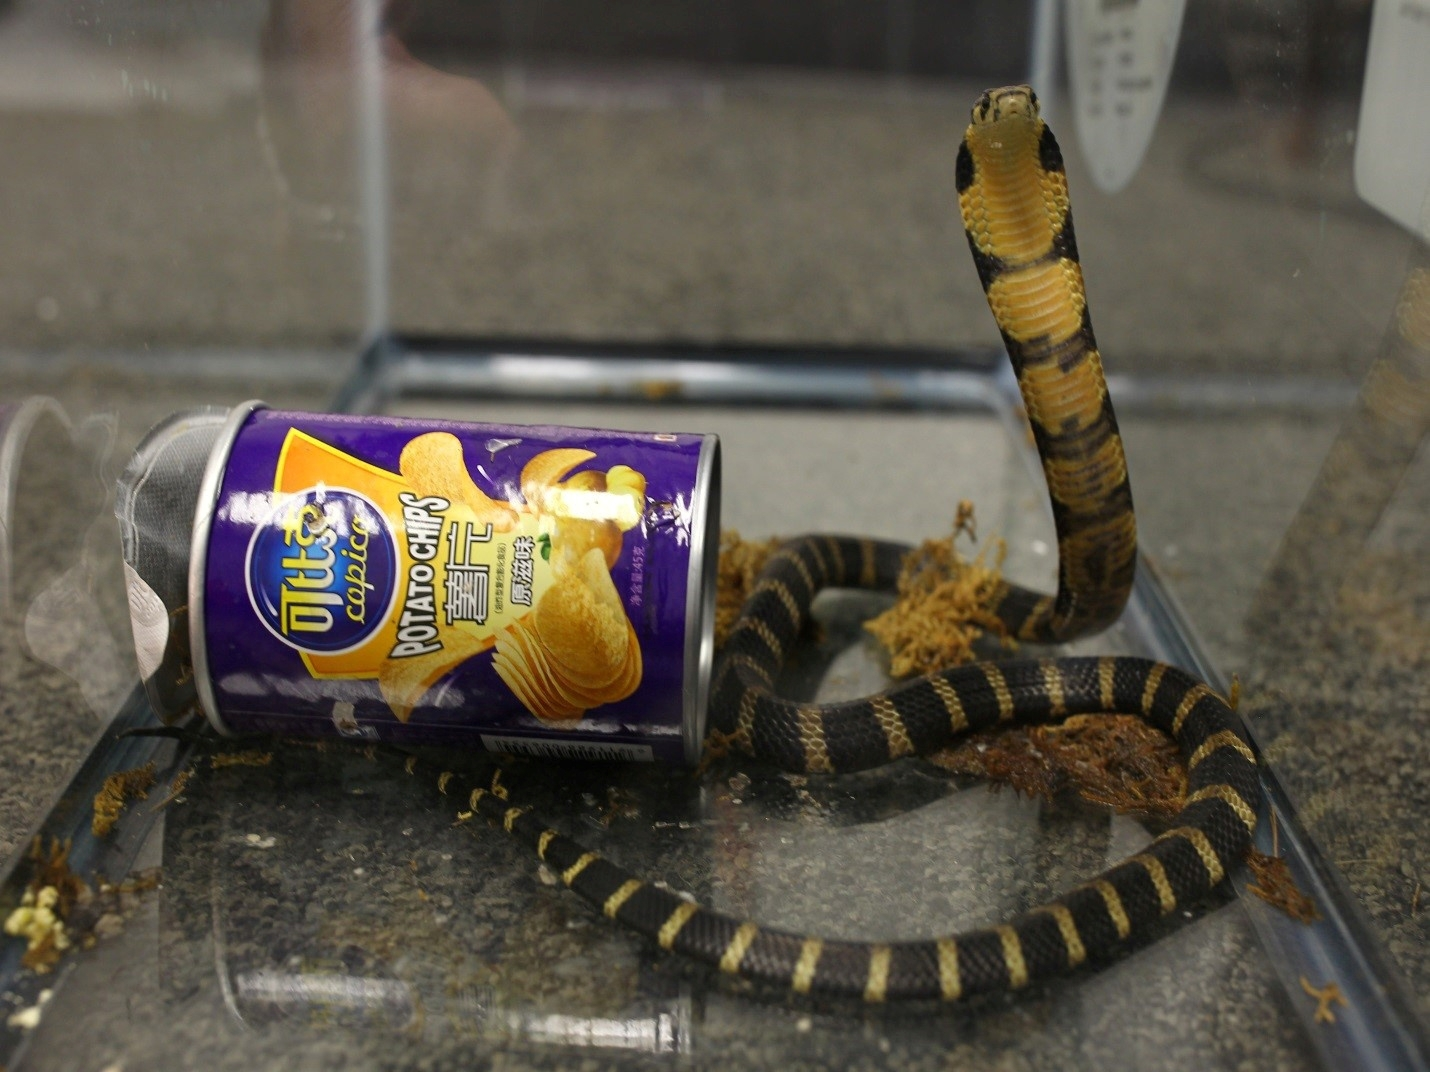 Cobra in chips can